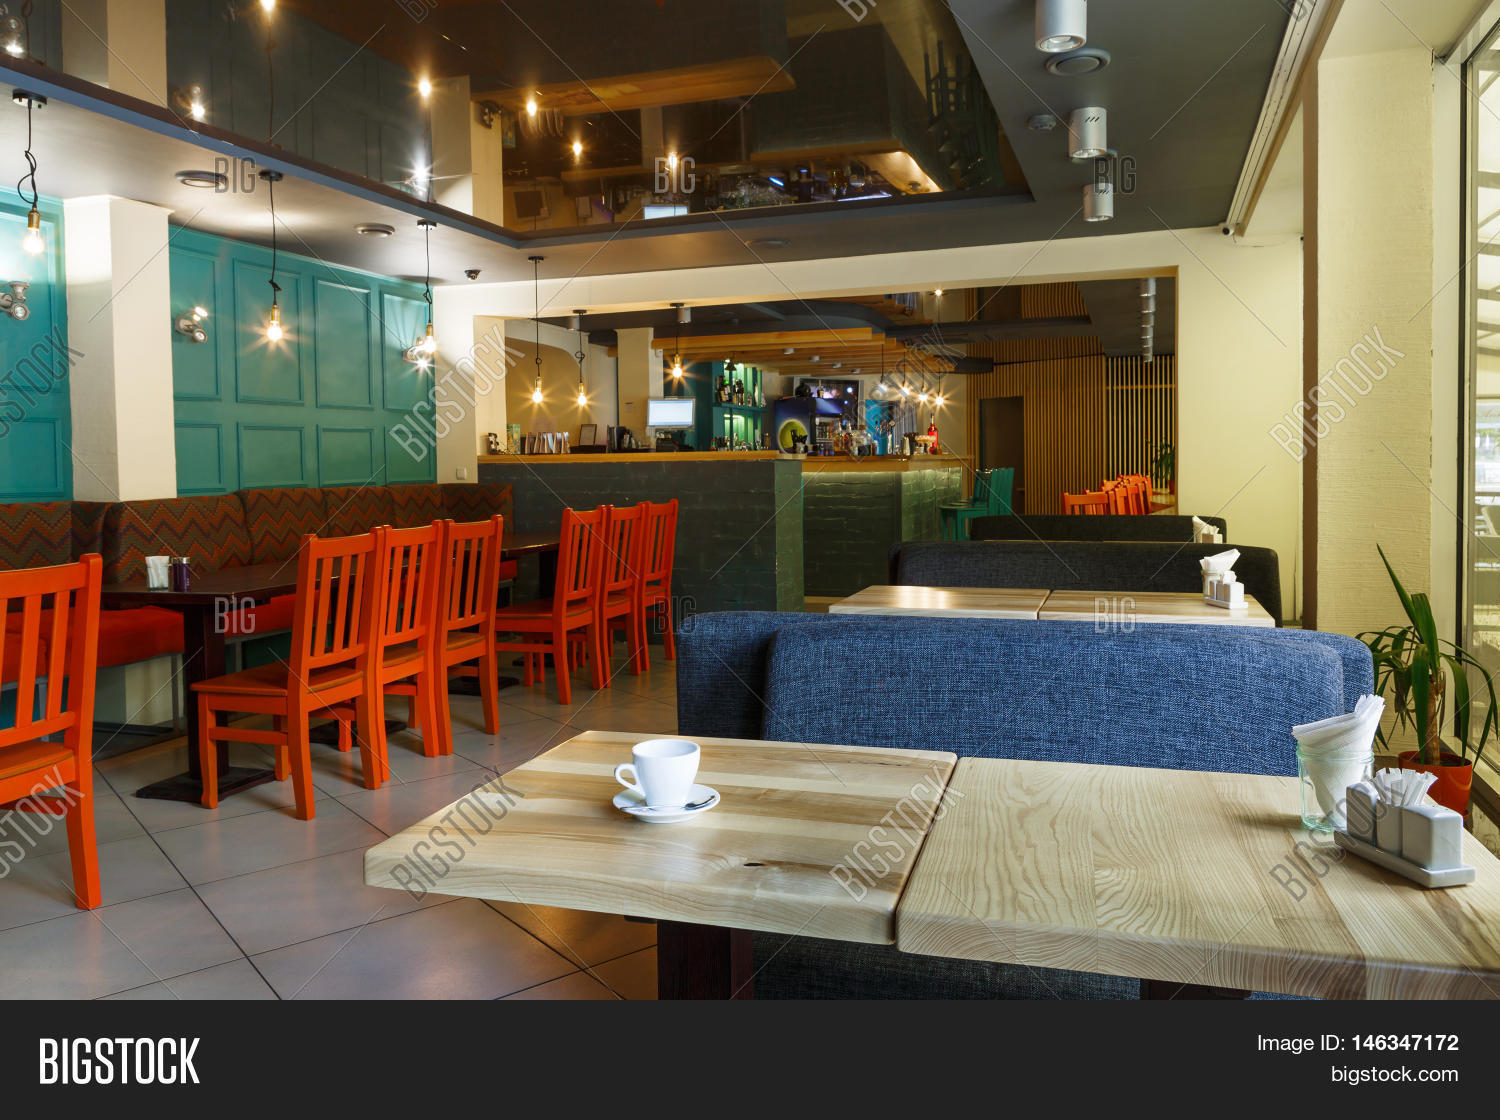 modern restaurant or cafe interior. public place interior design